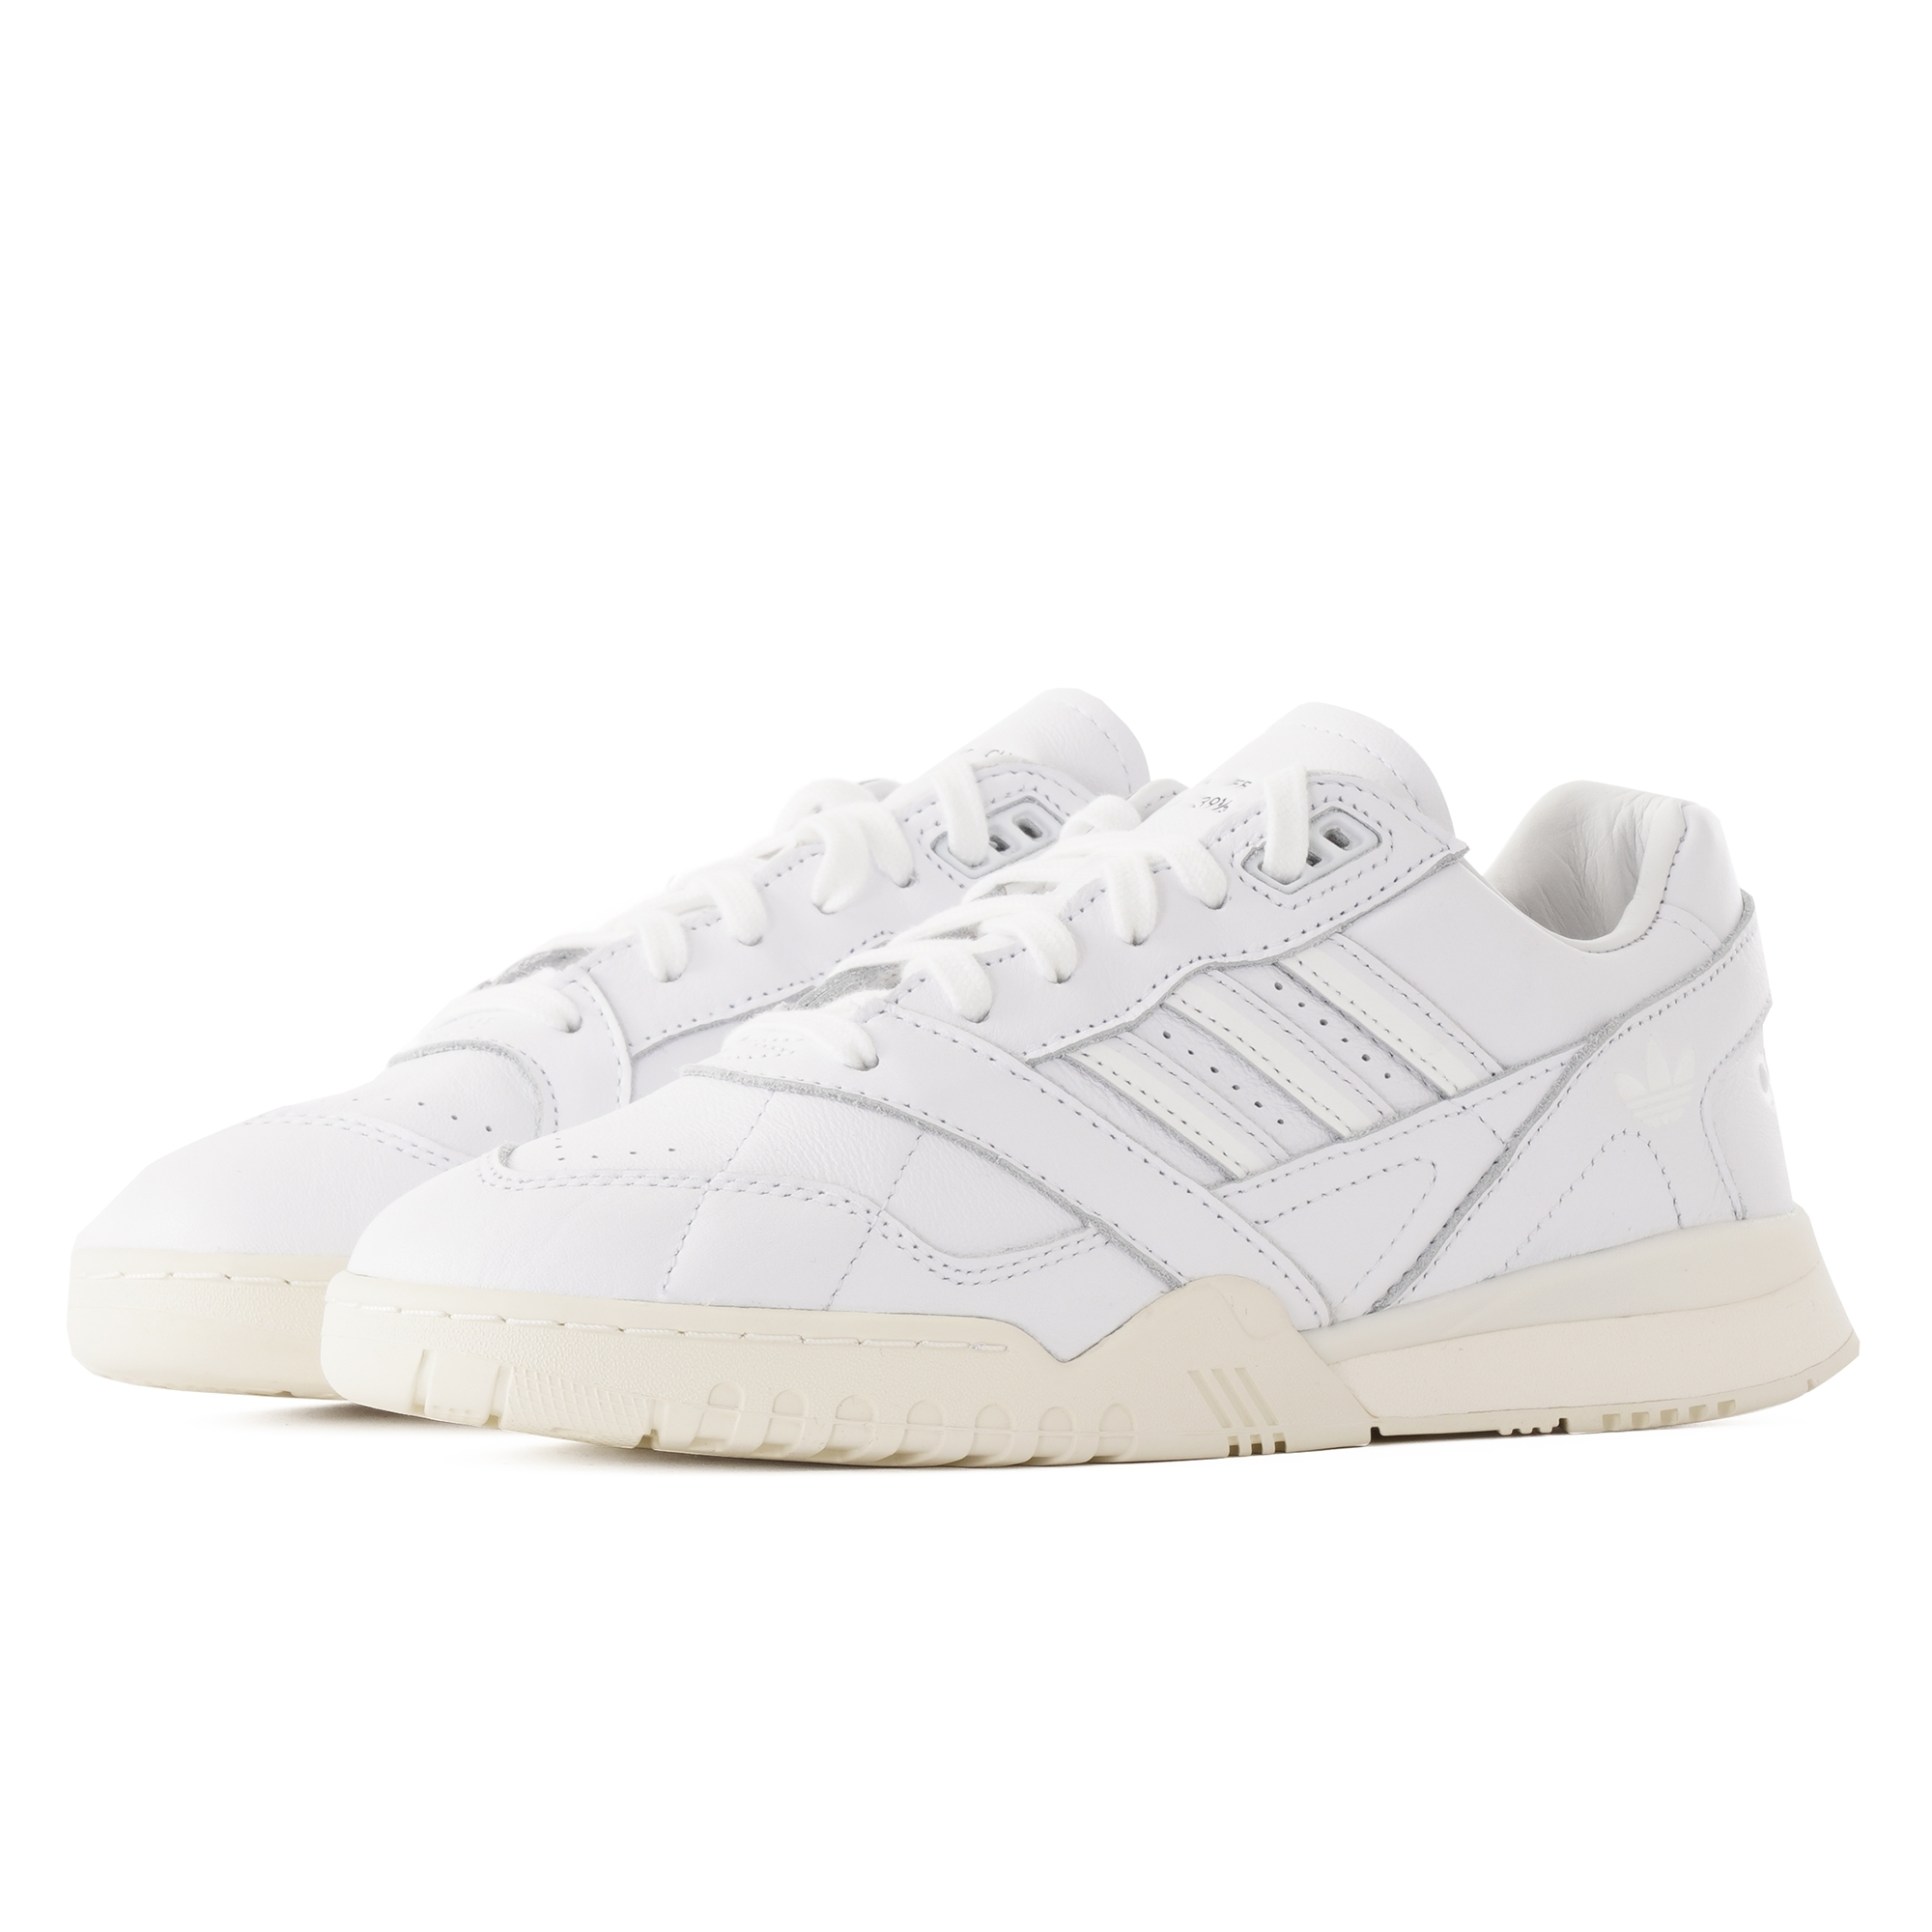 adidas Originals A.R. Trainer FTW White & Off White